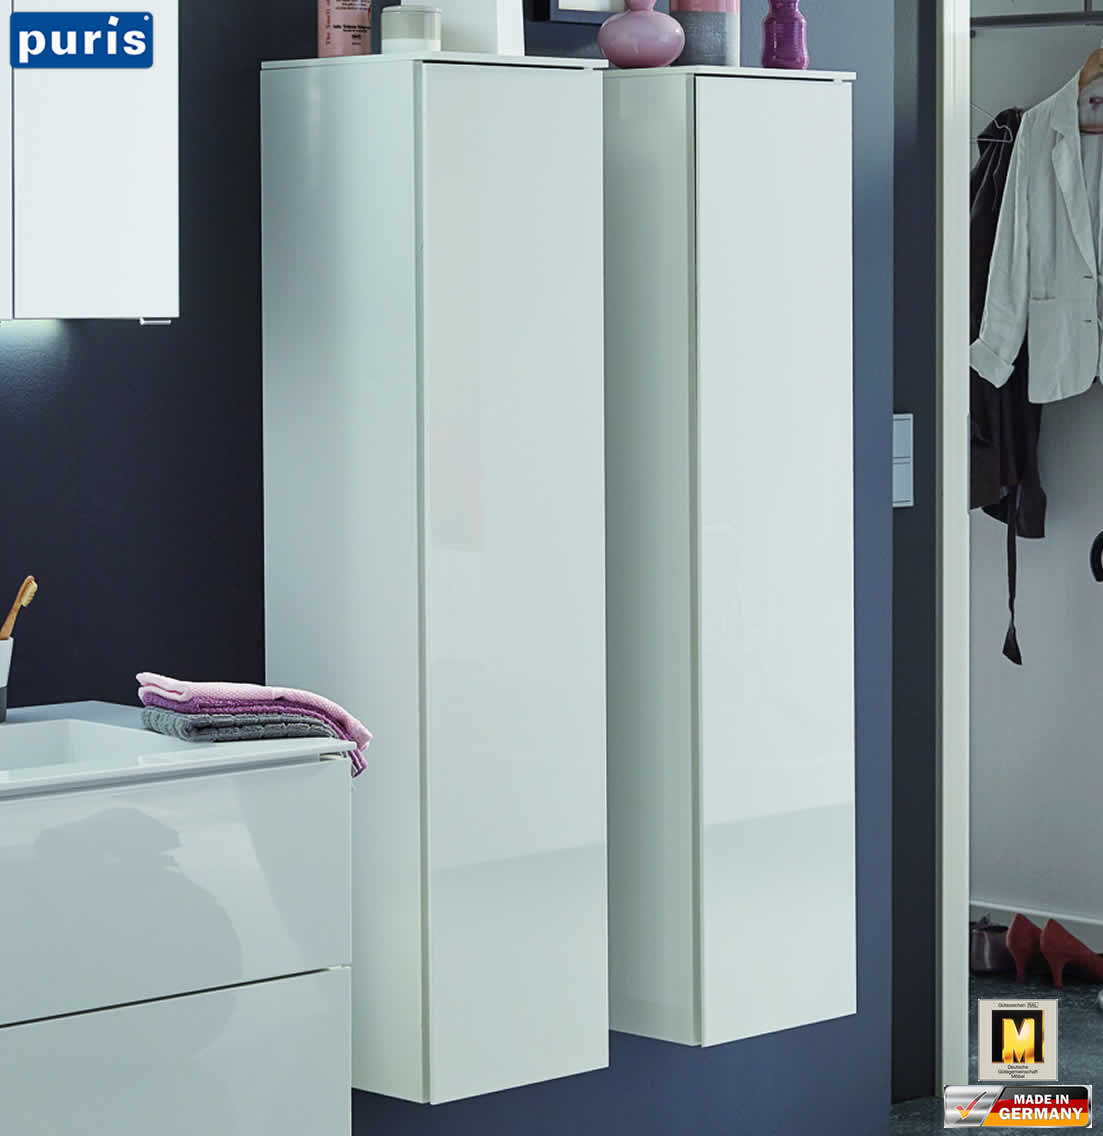 puris slim line mittelschrank 30 cm breite 1 t r impuls home. Black Bedroom Furniture Sets. Home Design Ideas